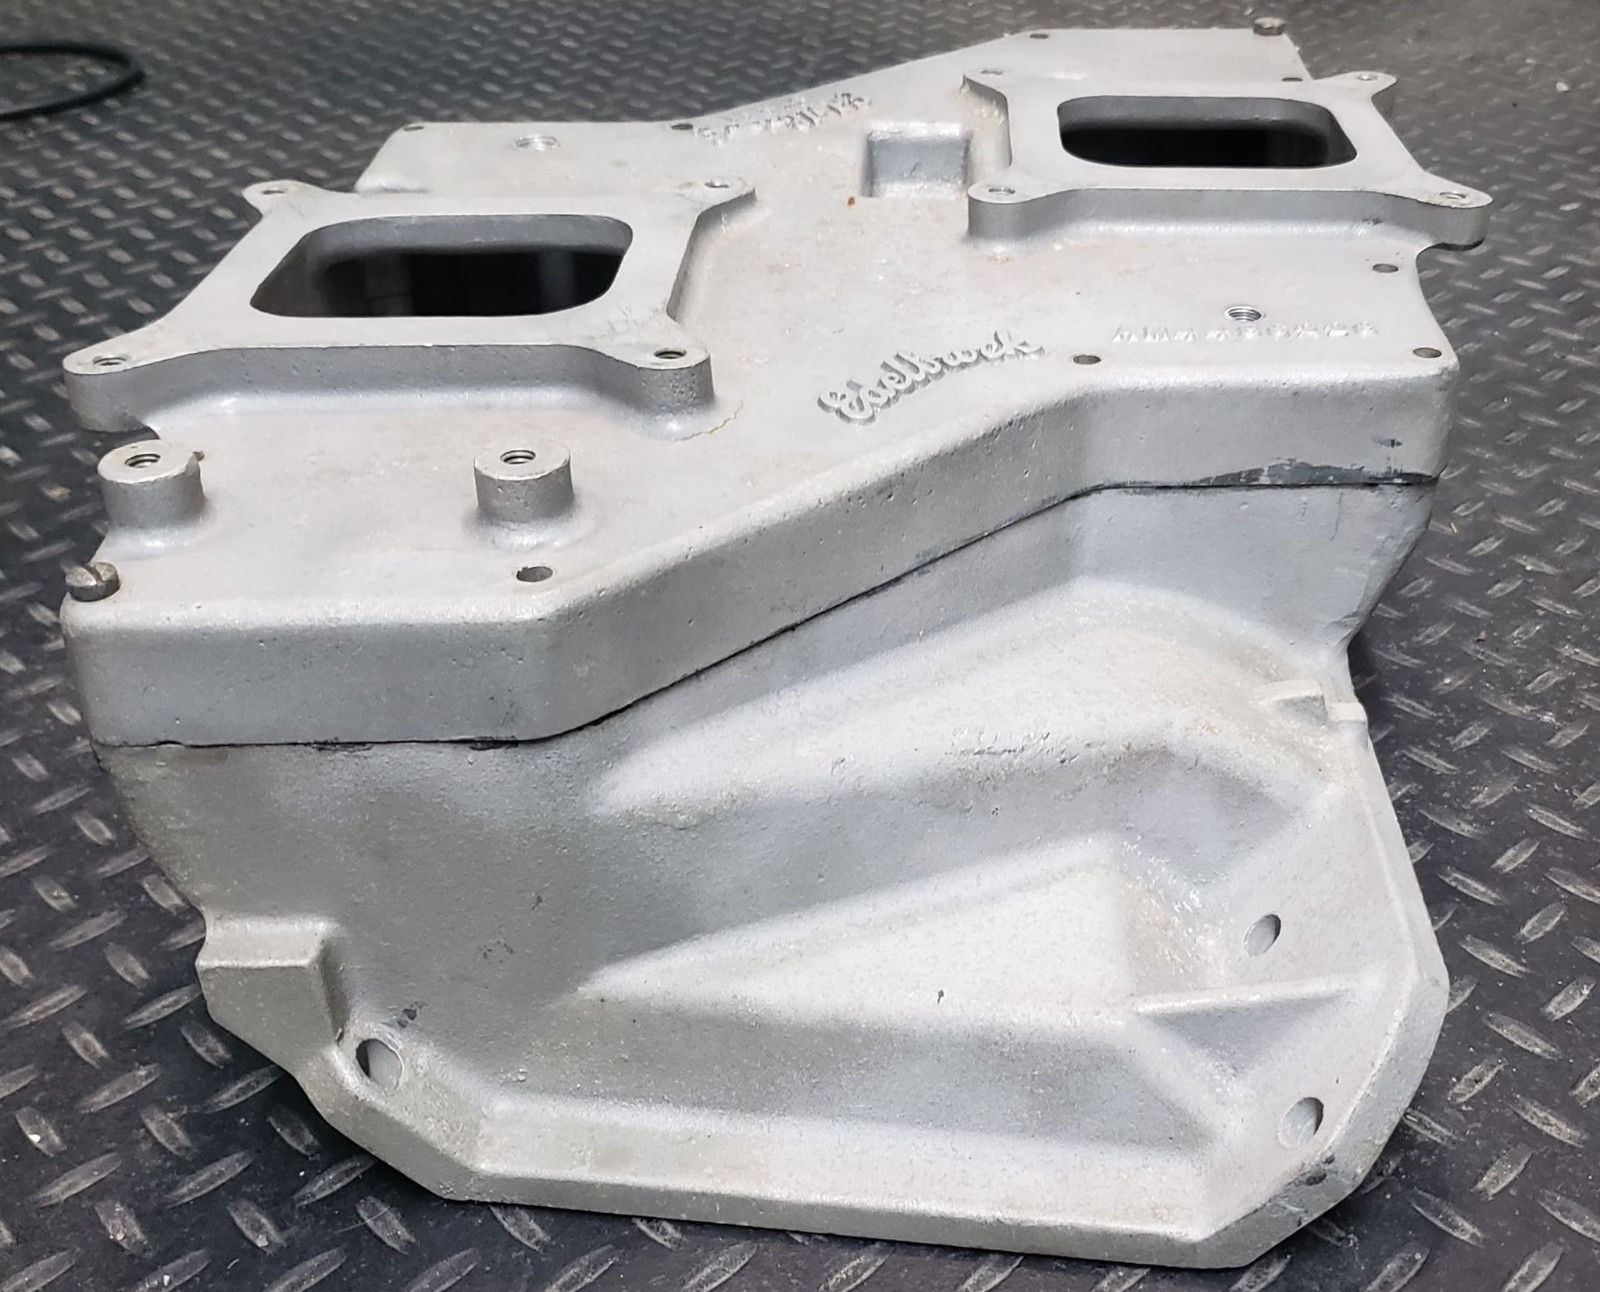 A Couple Cars Or An Intake Manifold? You Decide! This Vintage AMC Piece Is Big Bucks